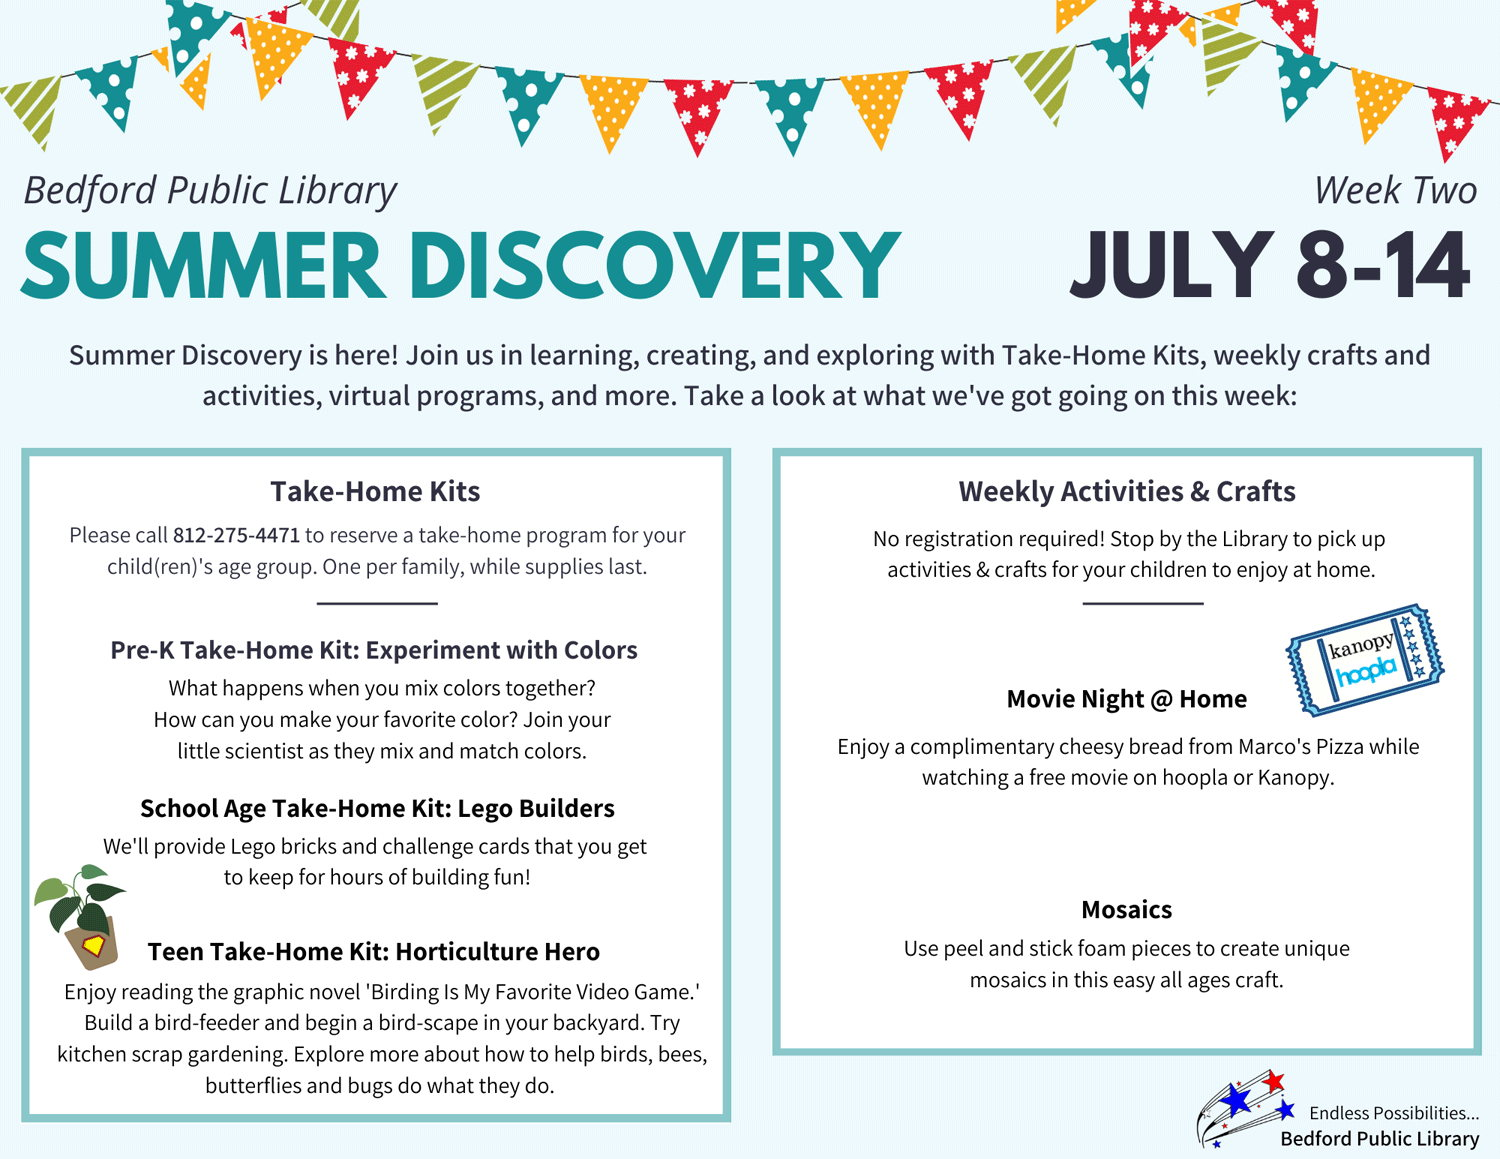 Bedford Public Library Summer Discovery Week Two. July 8-14. Summer Discovery is here! Join us in learning, creating, and exploring with Take-Home Kits, weekly crafts and activities, virtual programs, and more. Take a look at what we've got going on this week. Take-Home Kits: Please call 812-275-4471 to reserve a take-home program for your child(ren)'s age group. One per family, while supplies last. Pre-K Take-Home Kit: Experiment with Colors. What happens when you mix colors together? How can you make your favorite color? Join your little scientist as they mix and match colors. School Age Take-Home Kit: Lego Builders. We'll provide Lego bricks and challenge cards that you get to keep for hours of building fun! Teen Take-Home Kit: Horticulture Hero. Enjoy reading the graphic novel 'Birding Is My Favorite Video Game.' Build a bird feeder and begin a bird-scape in your back yard. Try kitchen scrap gardening. Explore more about how to help birds, bees, butterflies and bugs do what they do. Weekly Activities & Crafts: No registration required! Stop by the Library to pick up activities & crafts for your children to enjoy at home. Movie Night @ Home. Enjoy a complimentary cheesy bread from Marco's Pizza while watching a free movie on hoopla or Kanopy. Mosaics. Use peel and stick foam pieces to create unique mosaics in this easy all-ages craft. Endless Possibilities… Bedford Public Library.